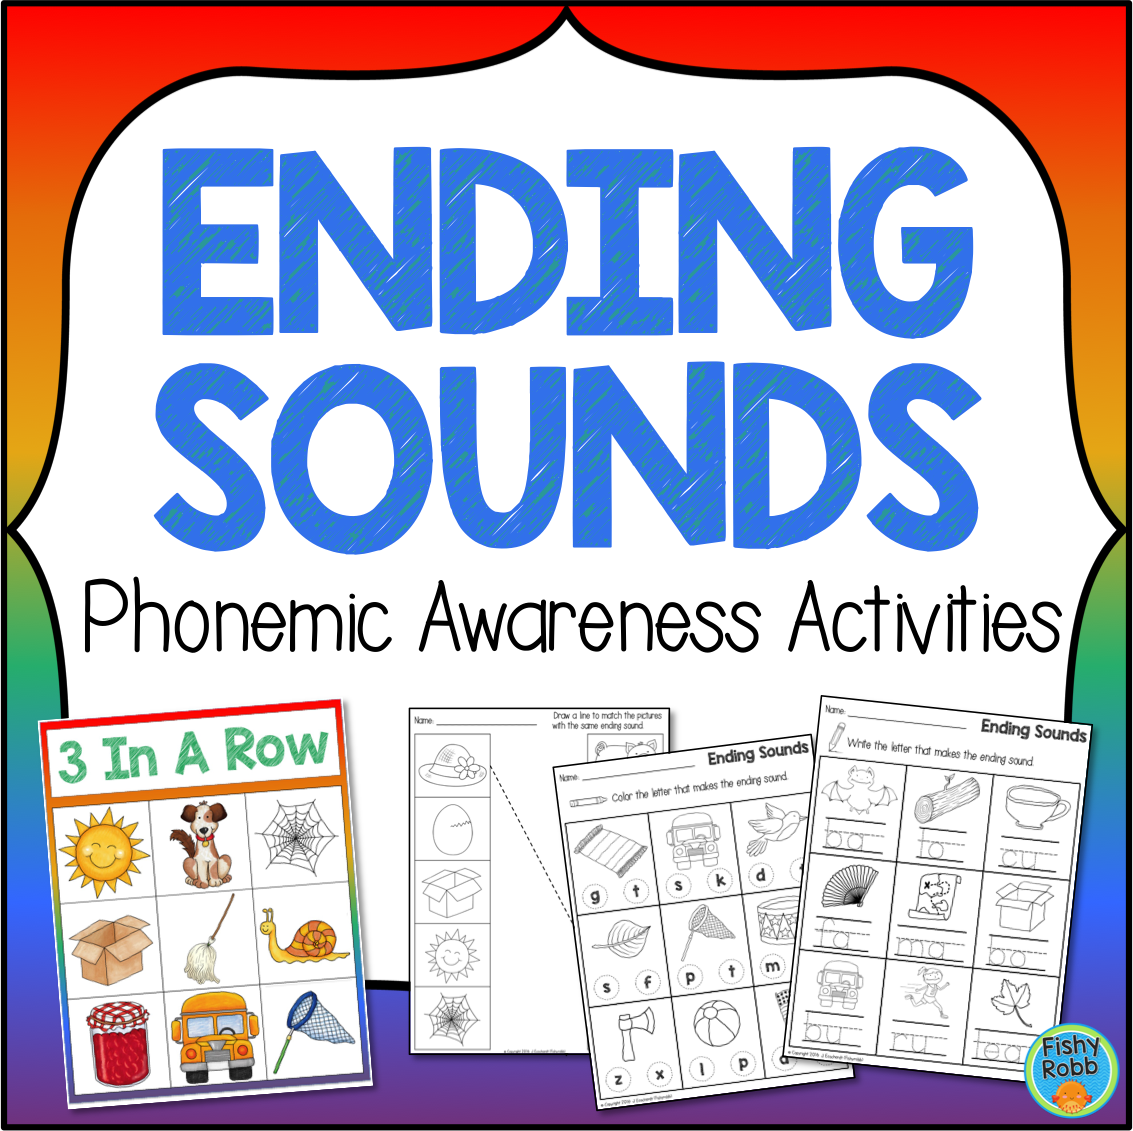 Ending Sounds Phonemic Awareness